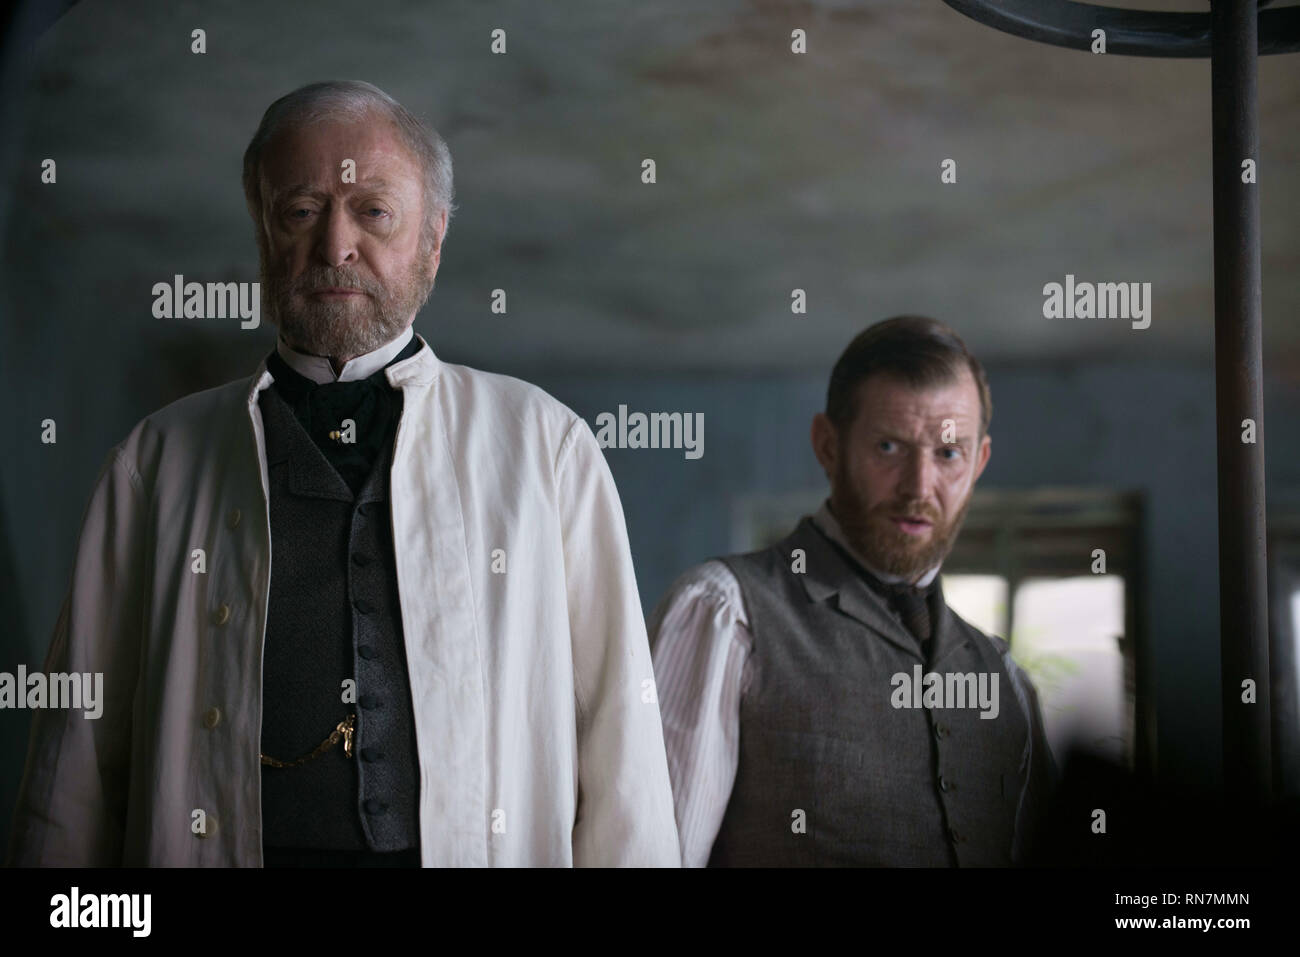 CAINE,FLEMYNG, ELIZA GRAVES, 2014 - Stock Image